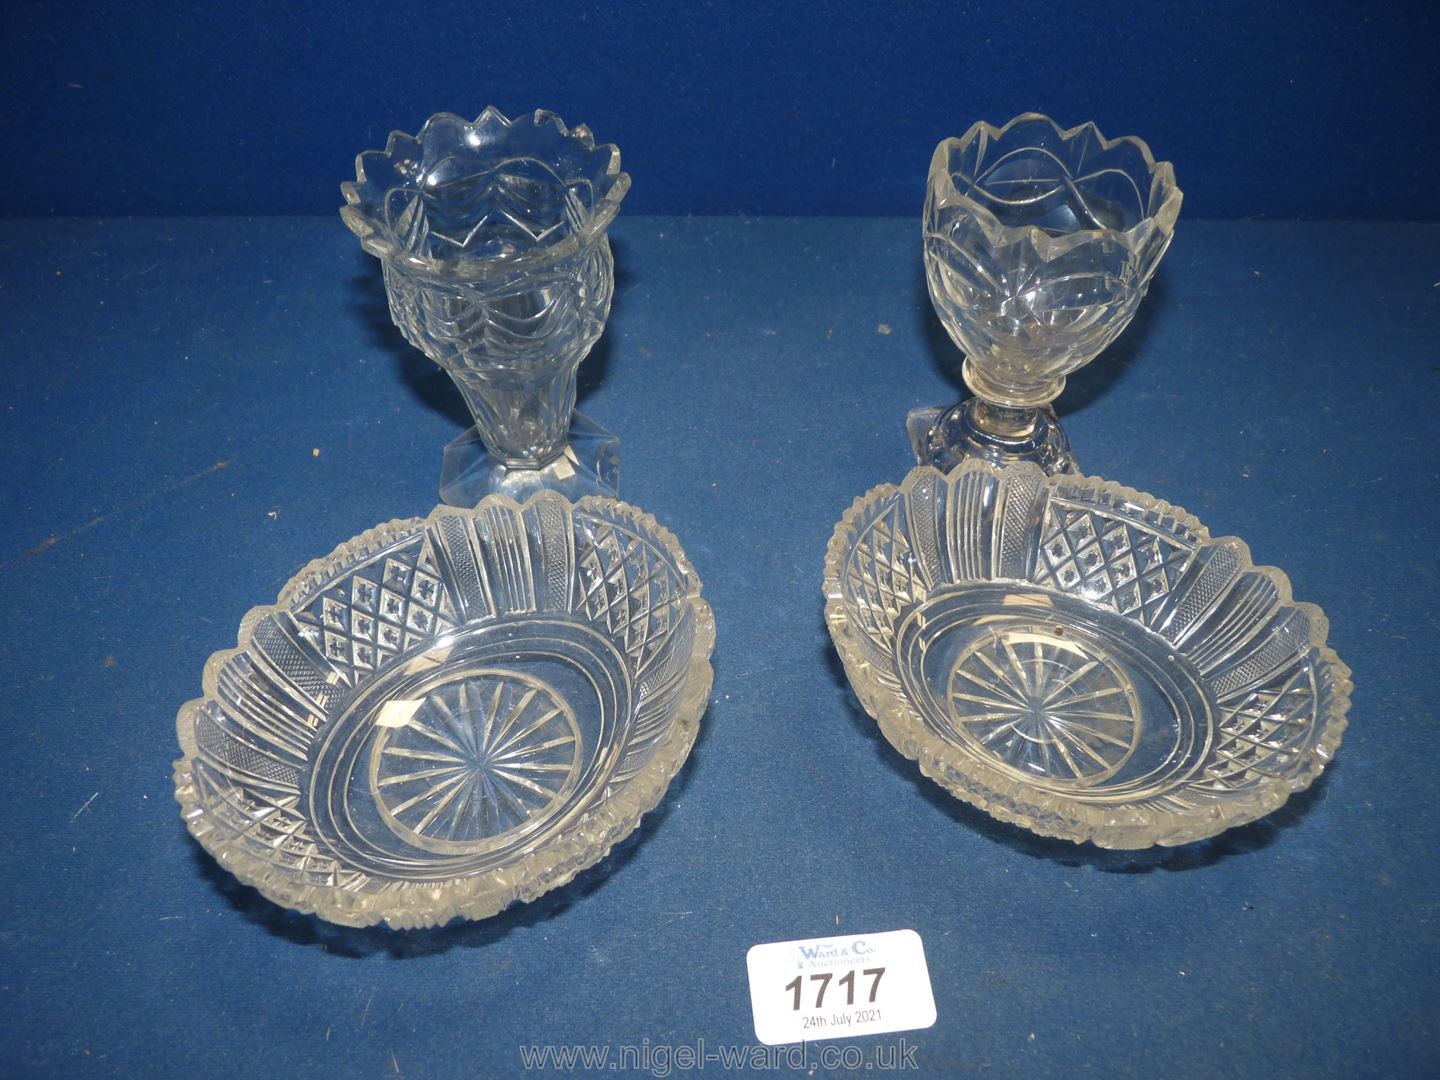 Two fine Regency cut glass dessert dishes and two cut glass posy vases of similar date (both vases